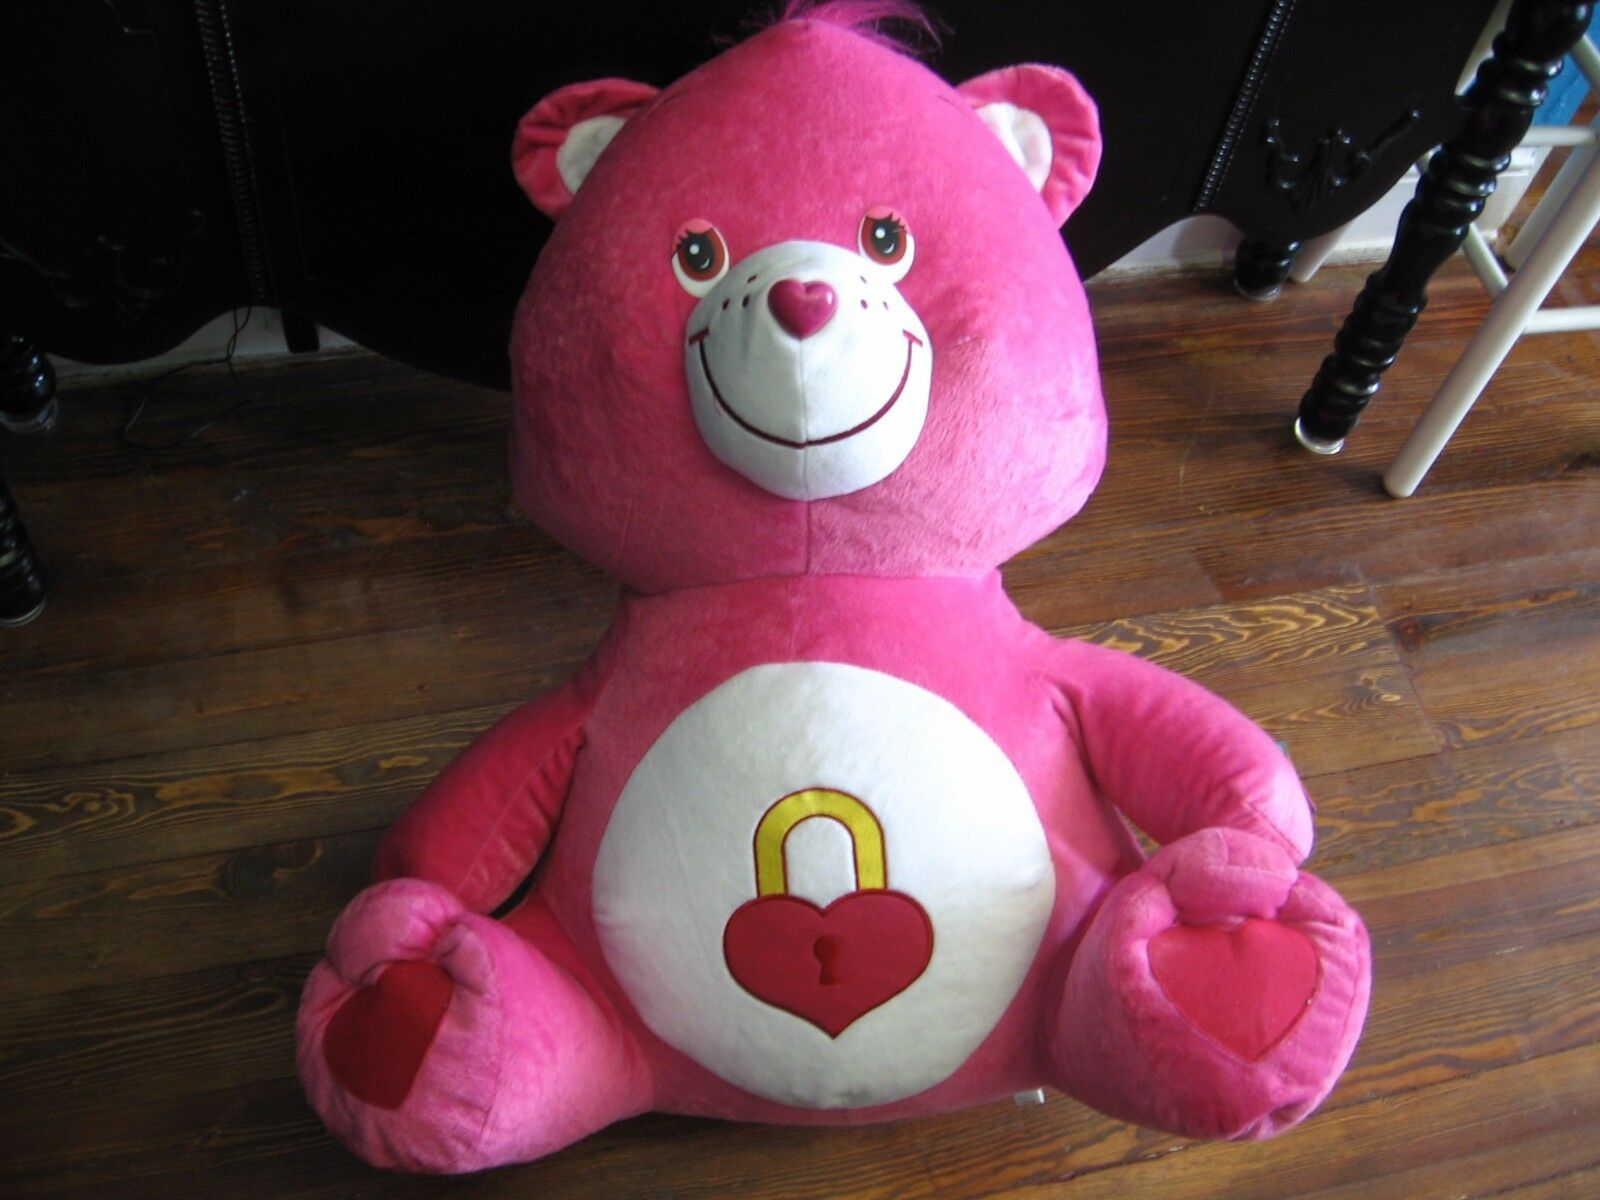 32  plush jumbo Secret Bear, Care Bears doll, good condition